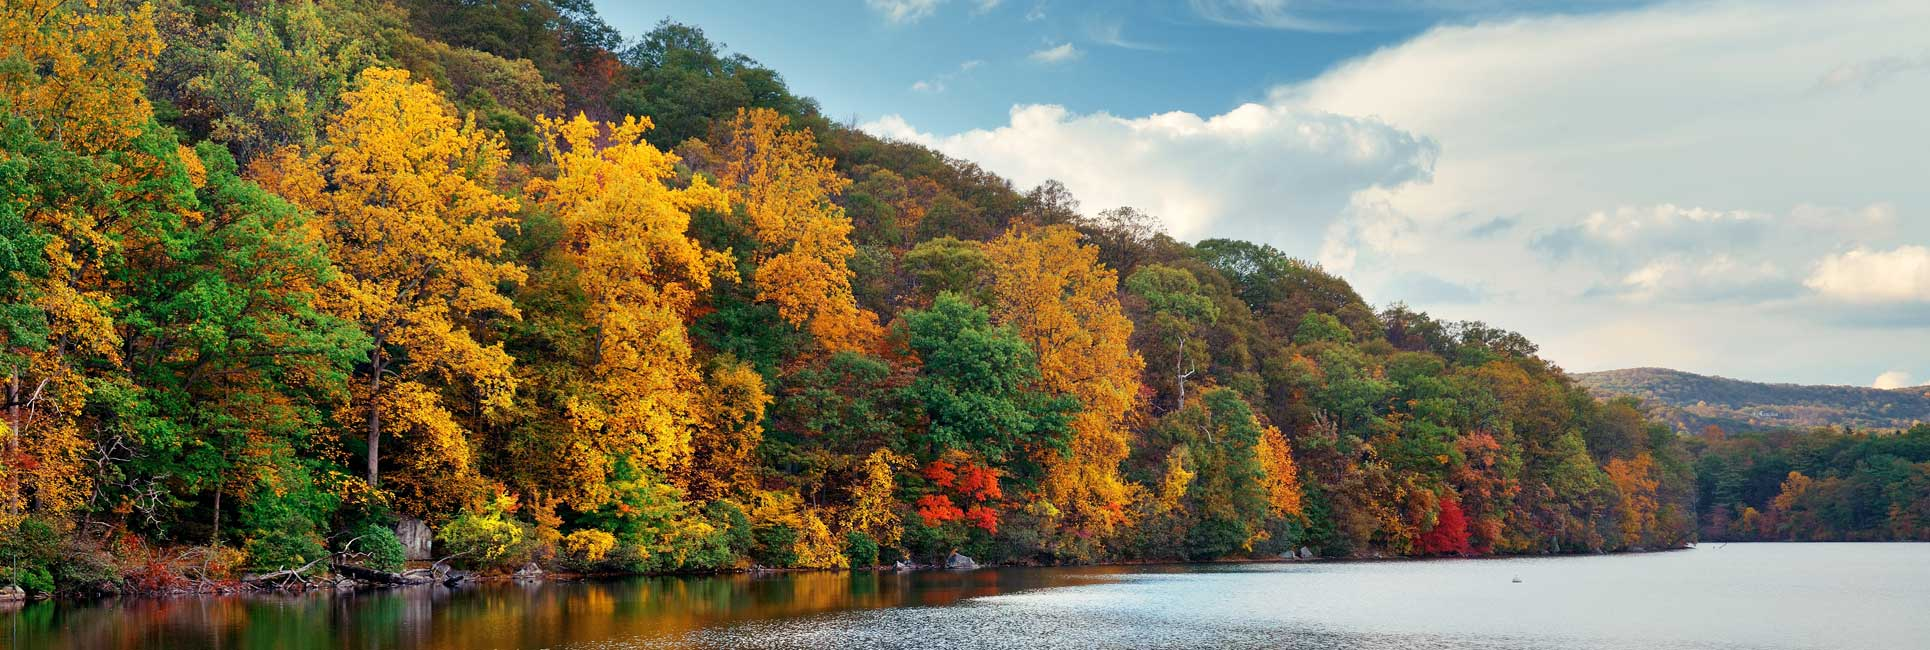 fishing lake in new york state with bright fall colored trees